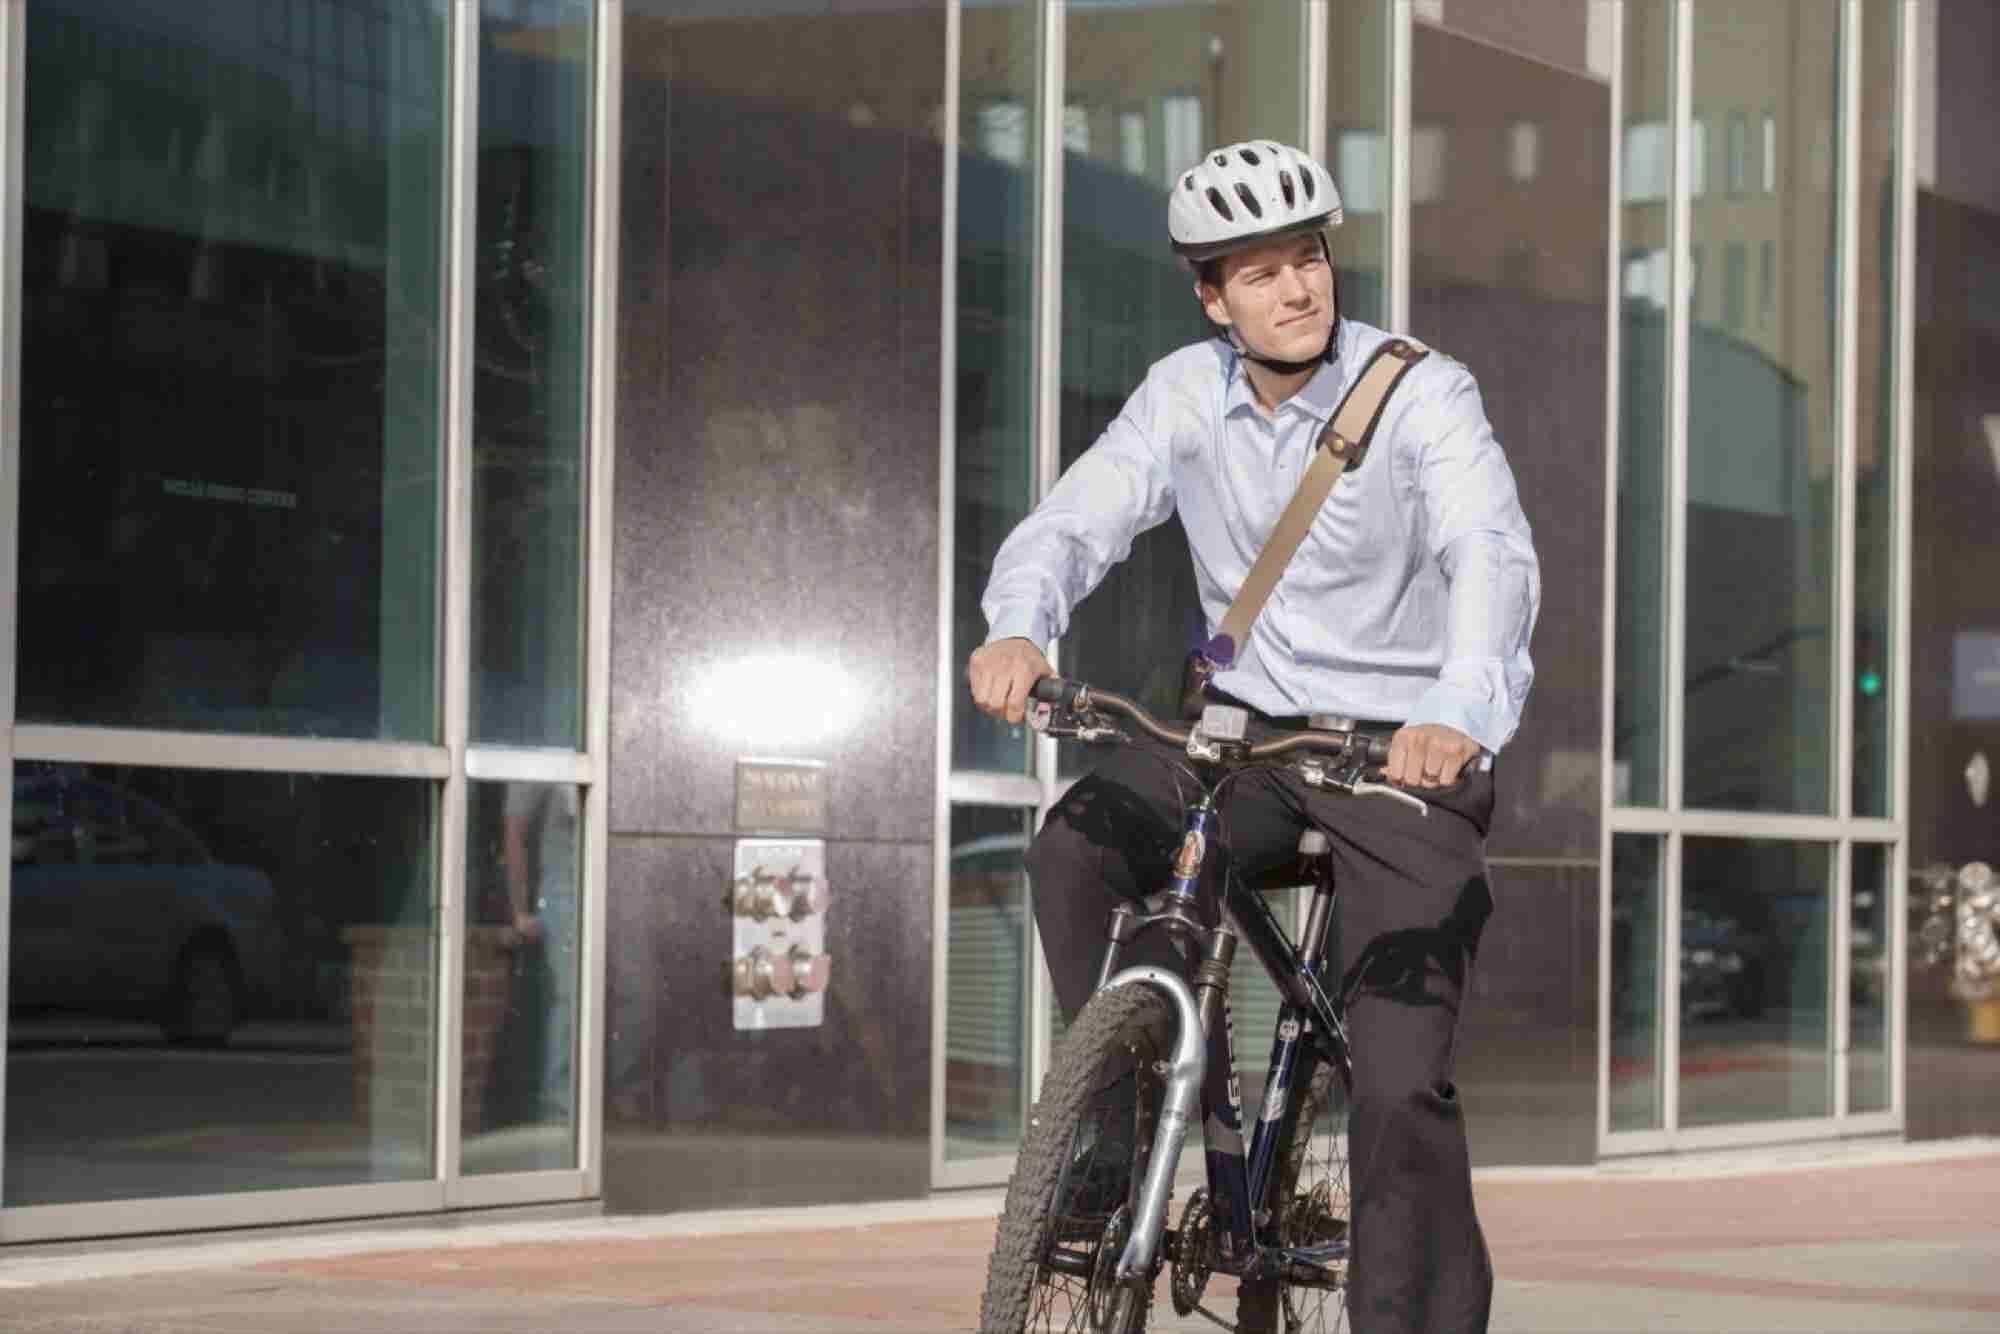 5 Smart Ways for Companies to Simplify Employee Commute